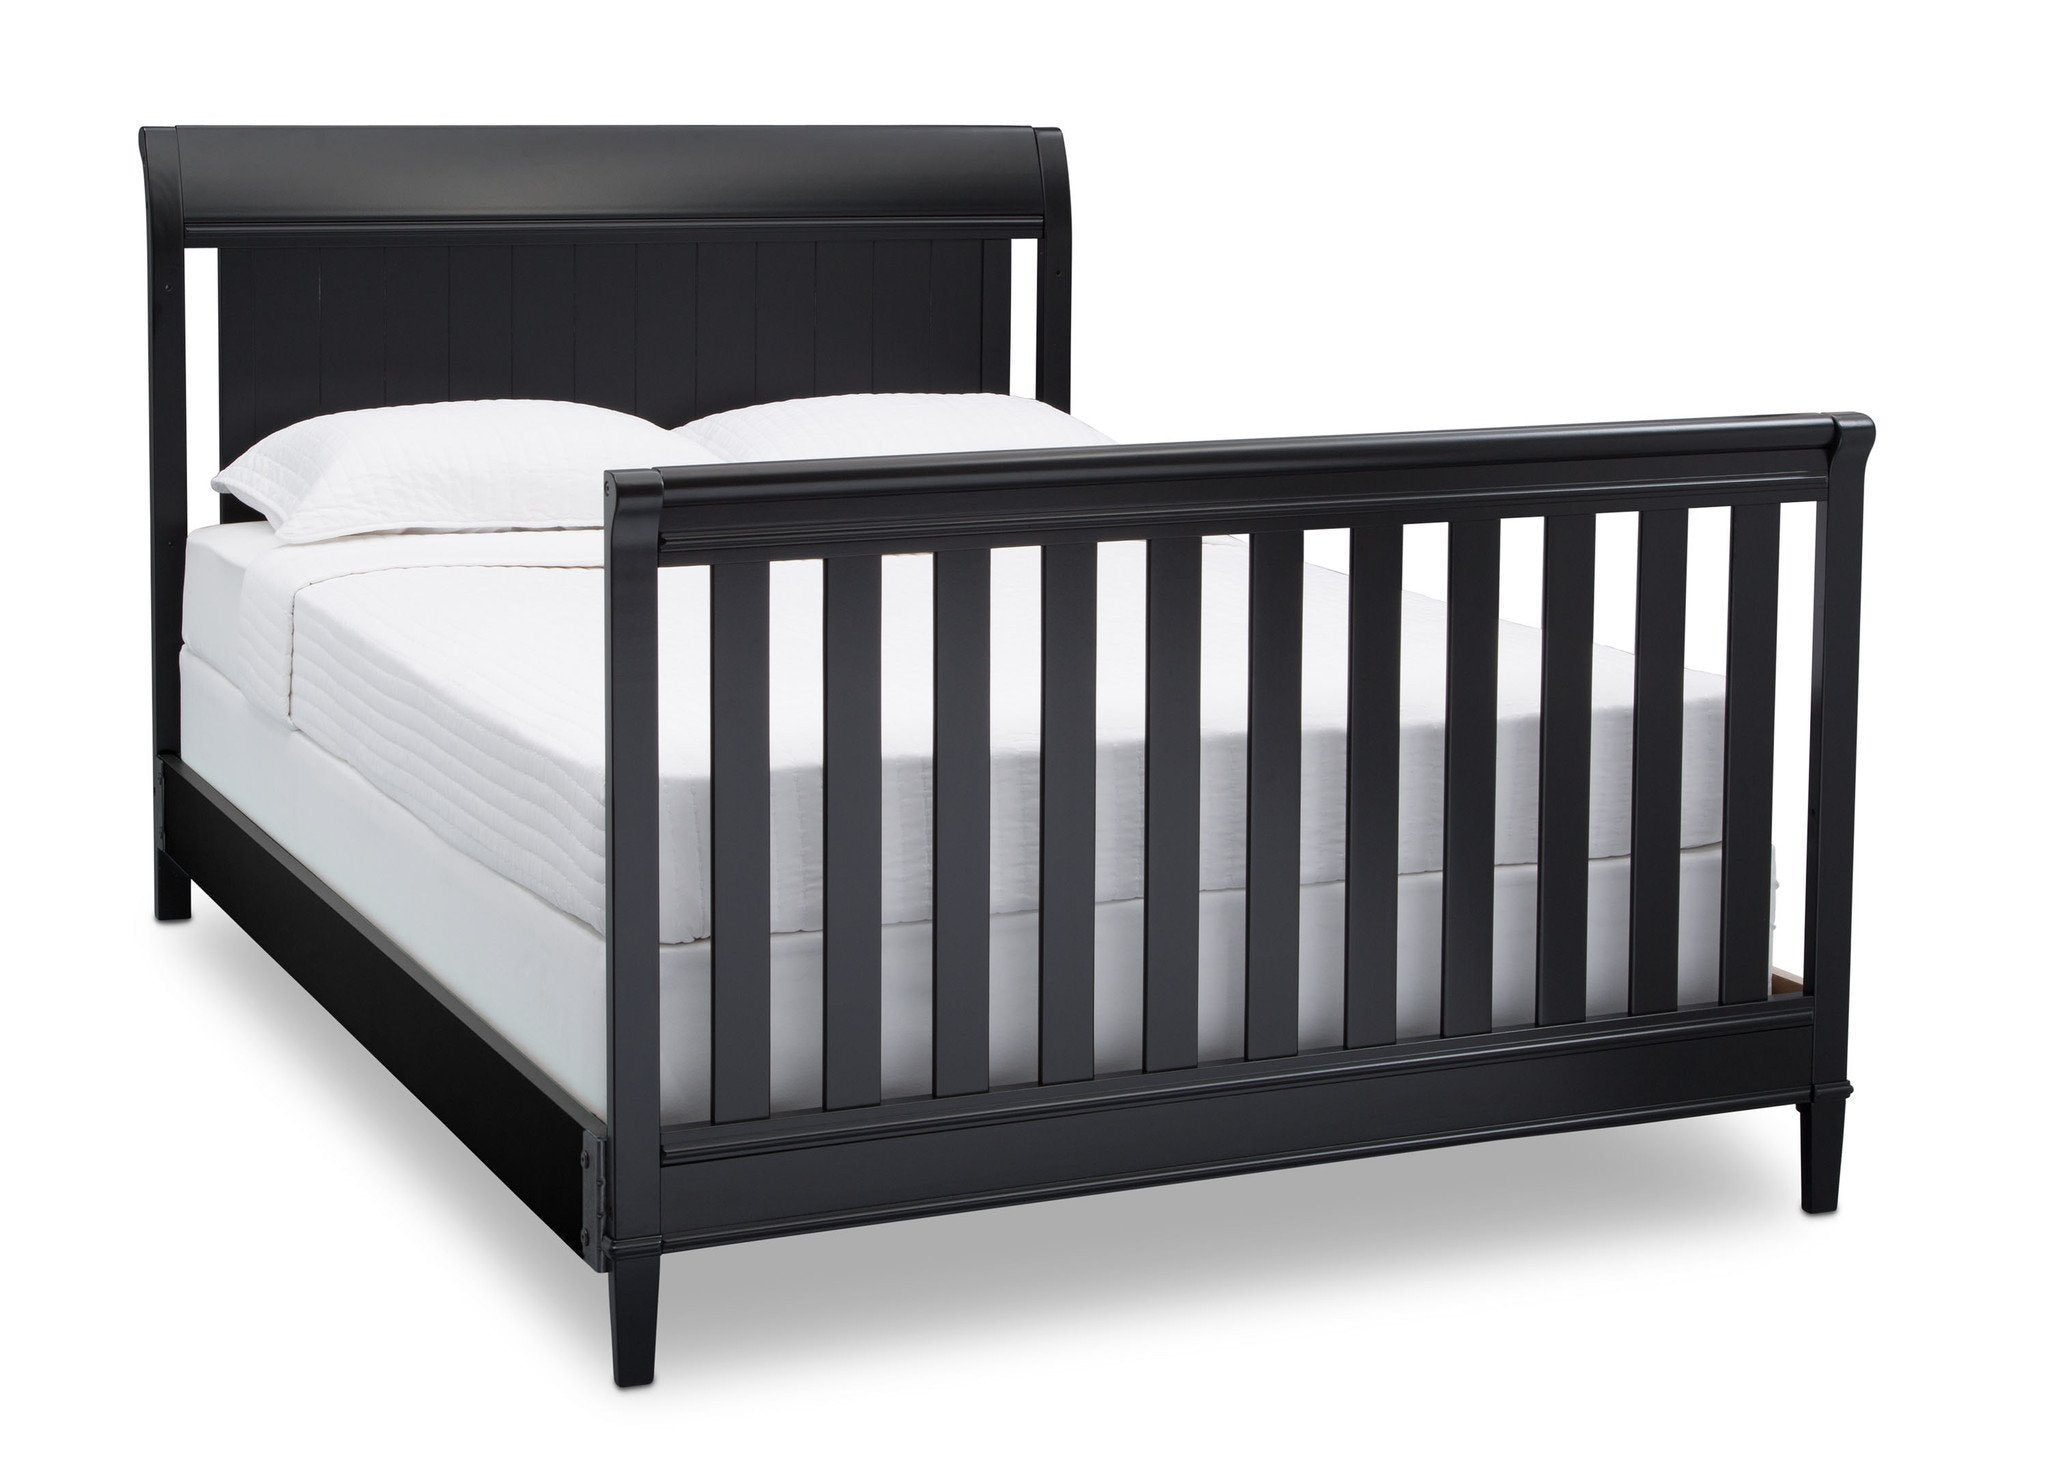 Delta Children Ebony (0011) New Haven 4-in-1 Crib, Angled Conversion to Full Size Bed, a6a